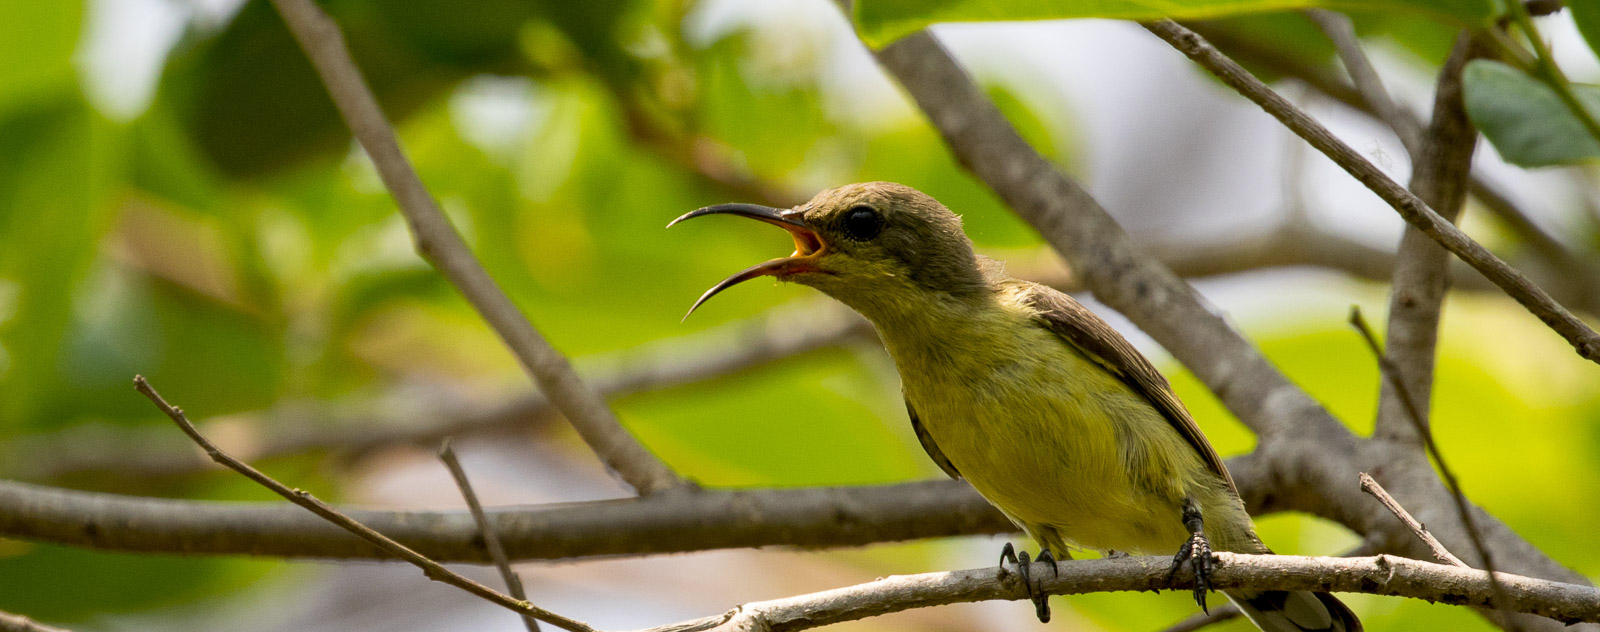 Olive Backed Sunbird in Tangkoko National Park